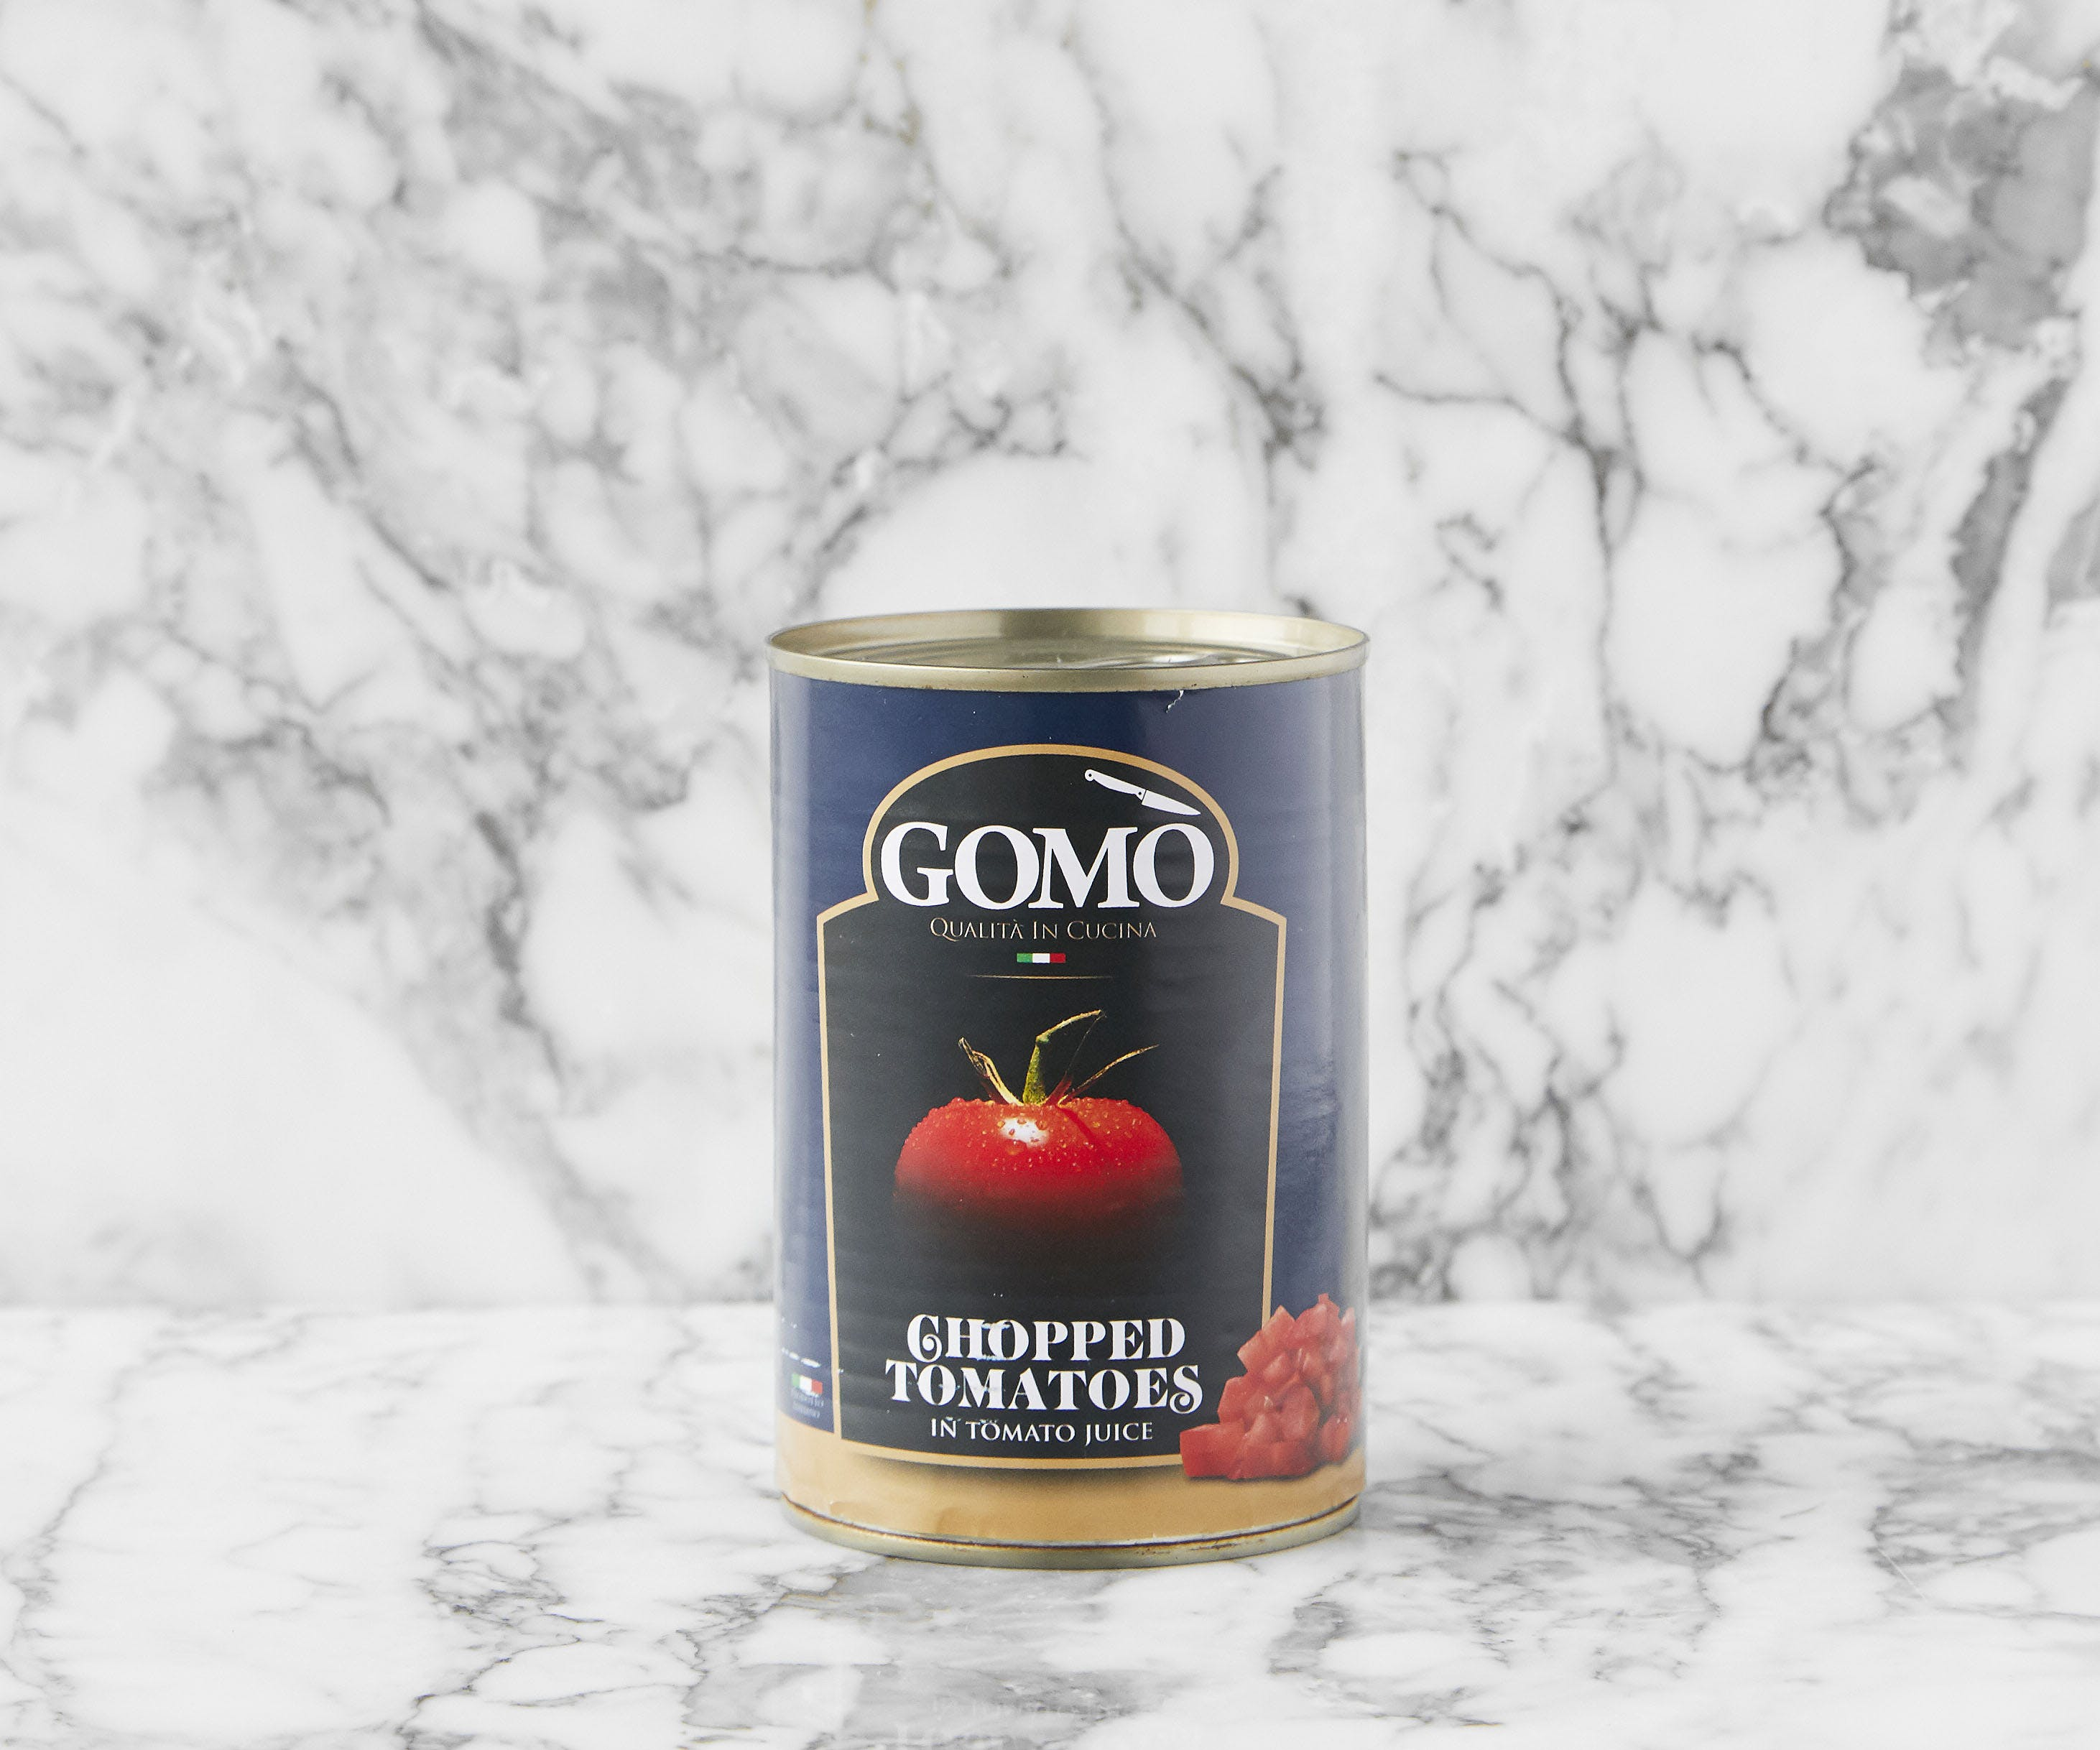 Gomo Chopped Tomatoes